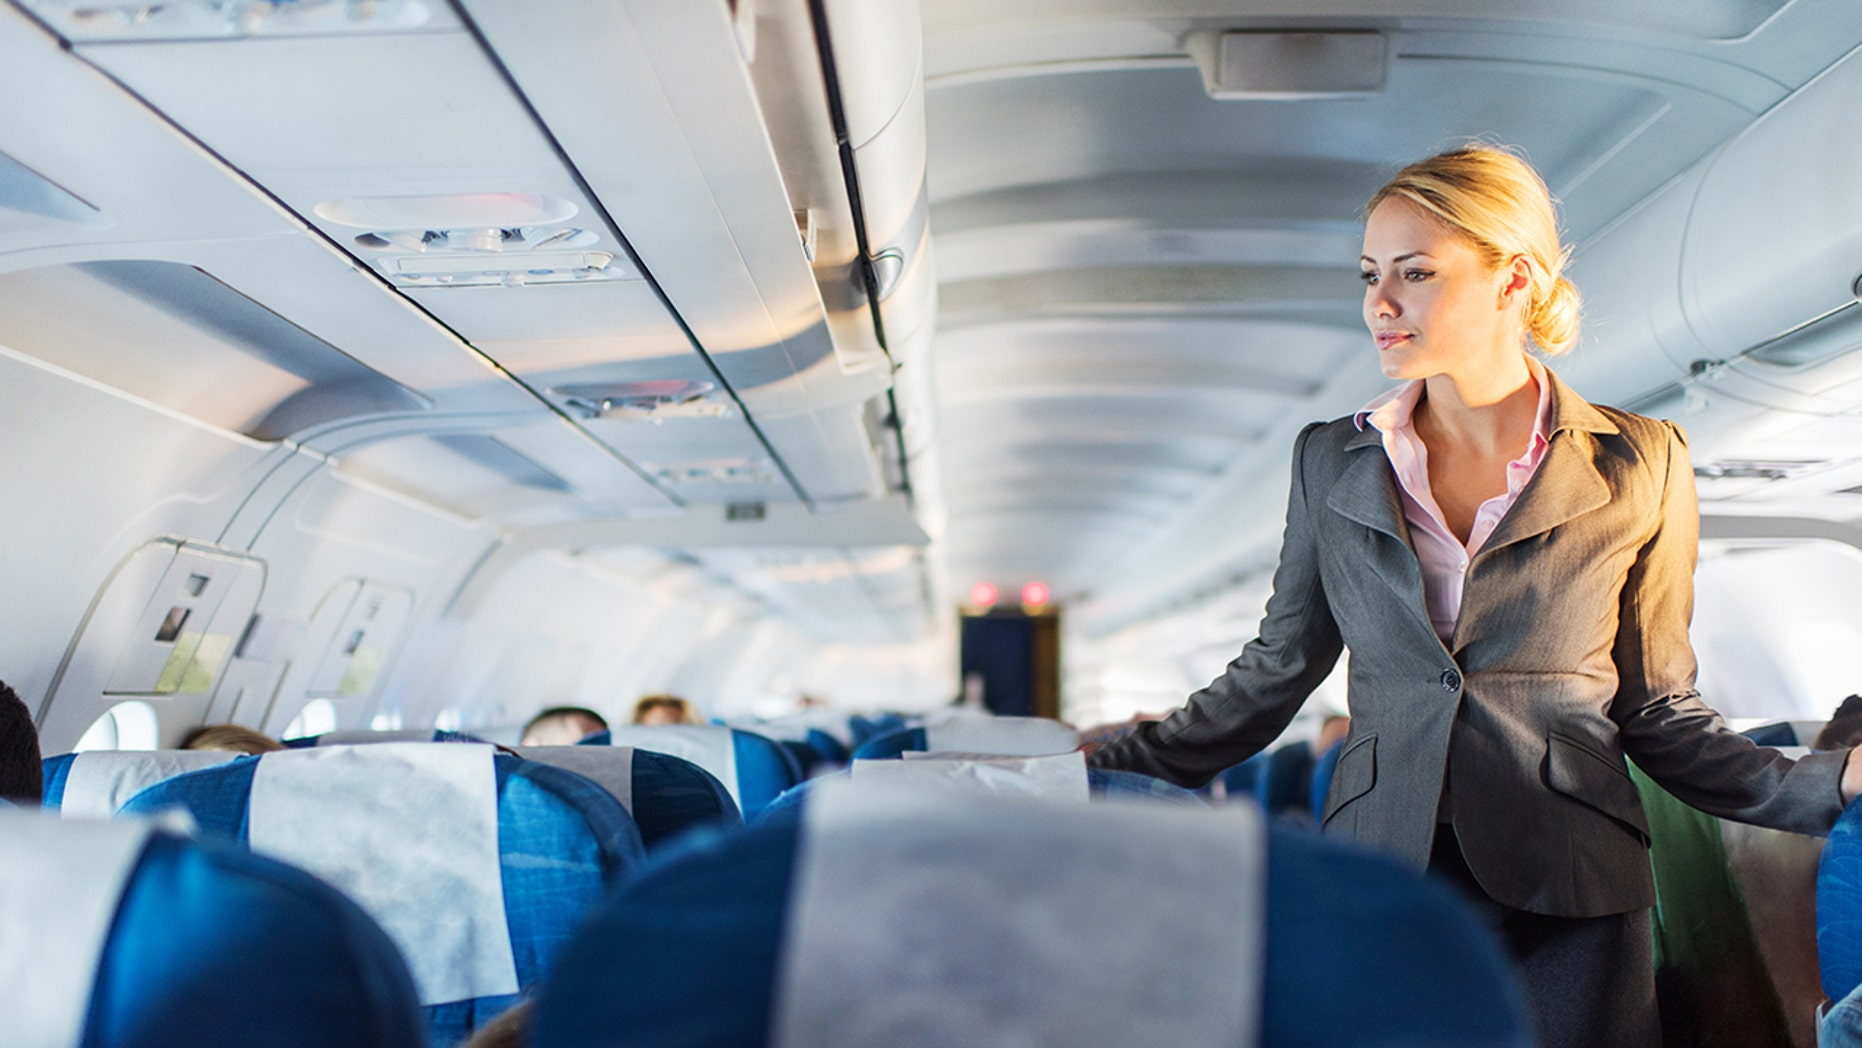 The airplane boarding process could be spreading diseases, according to a study